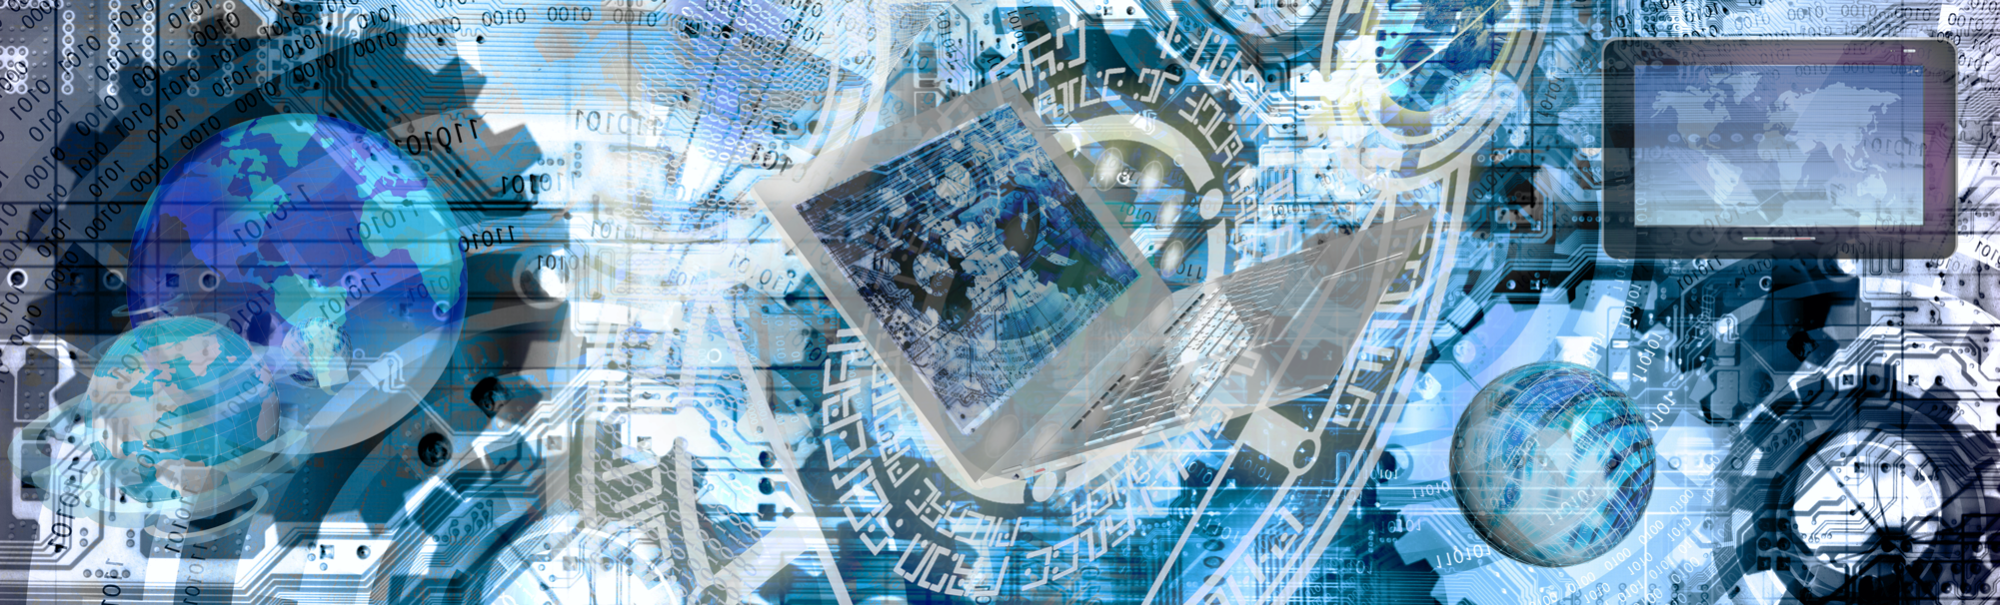 information technology industry banner image